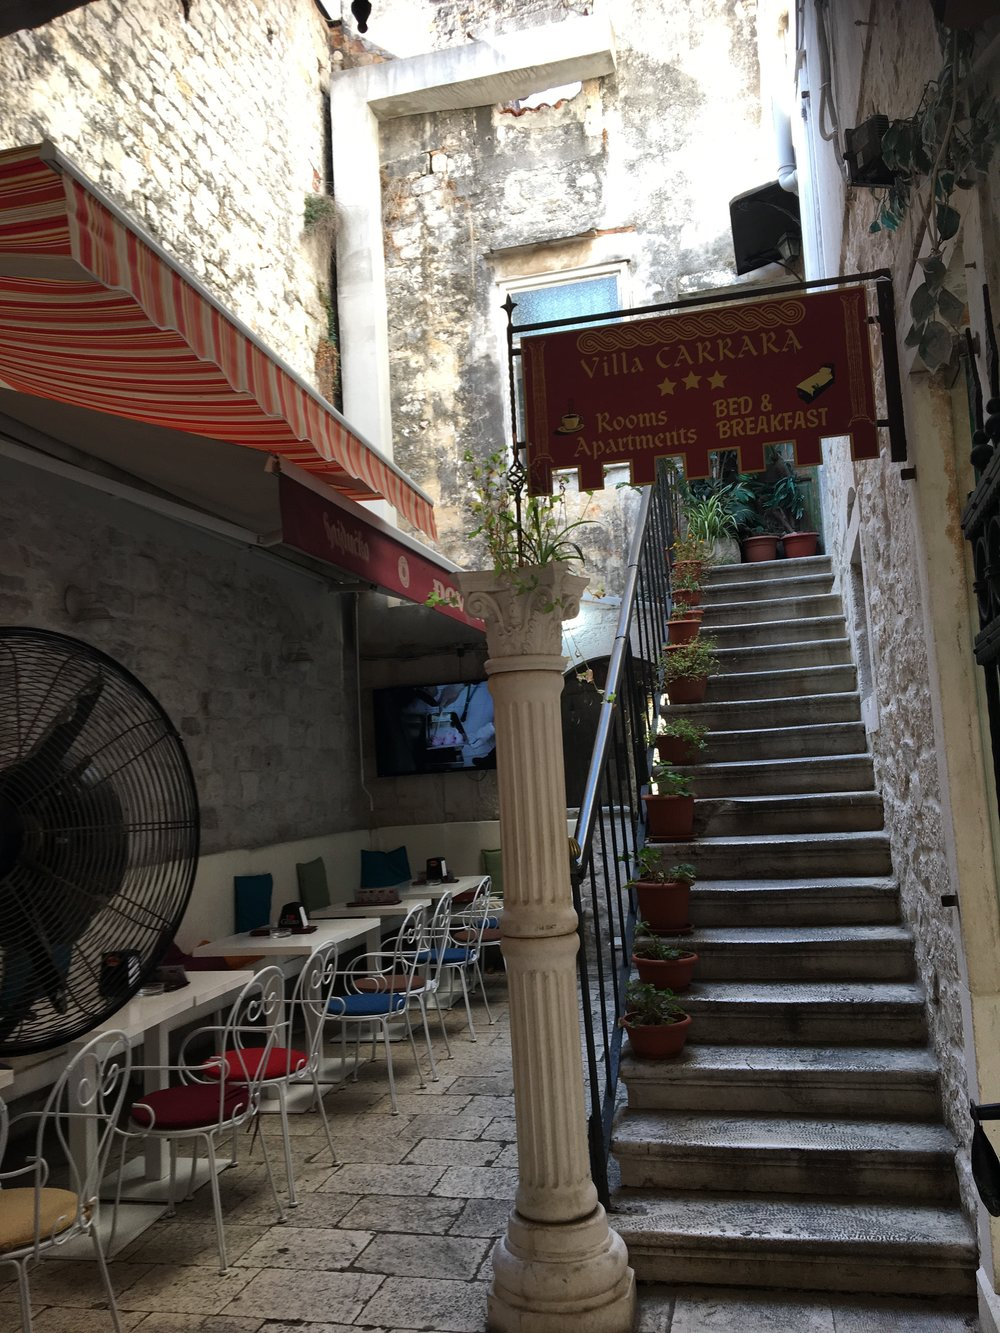 This is common dining in Trogir and most towns